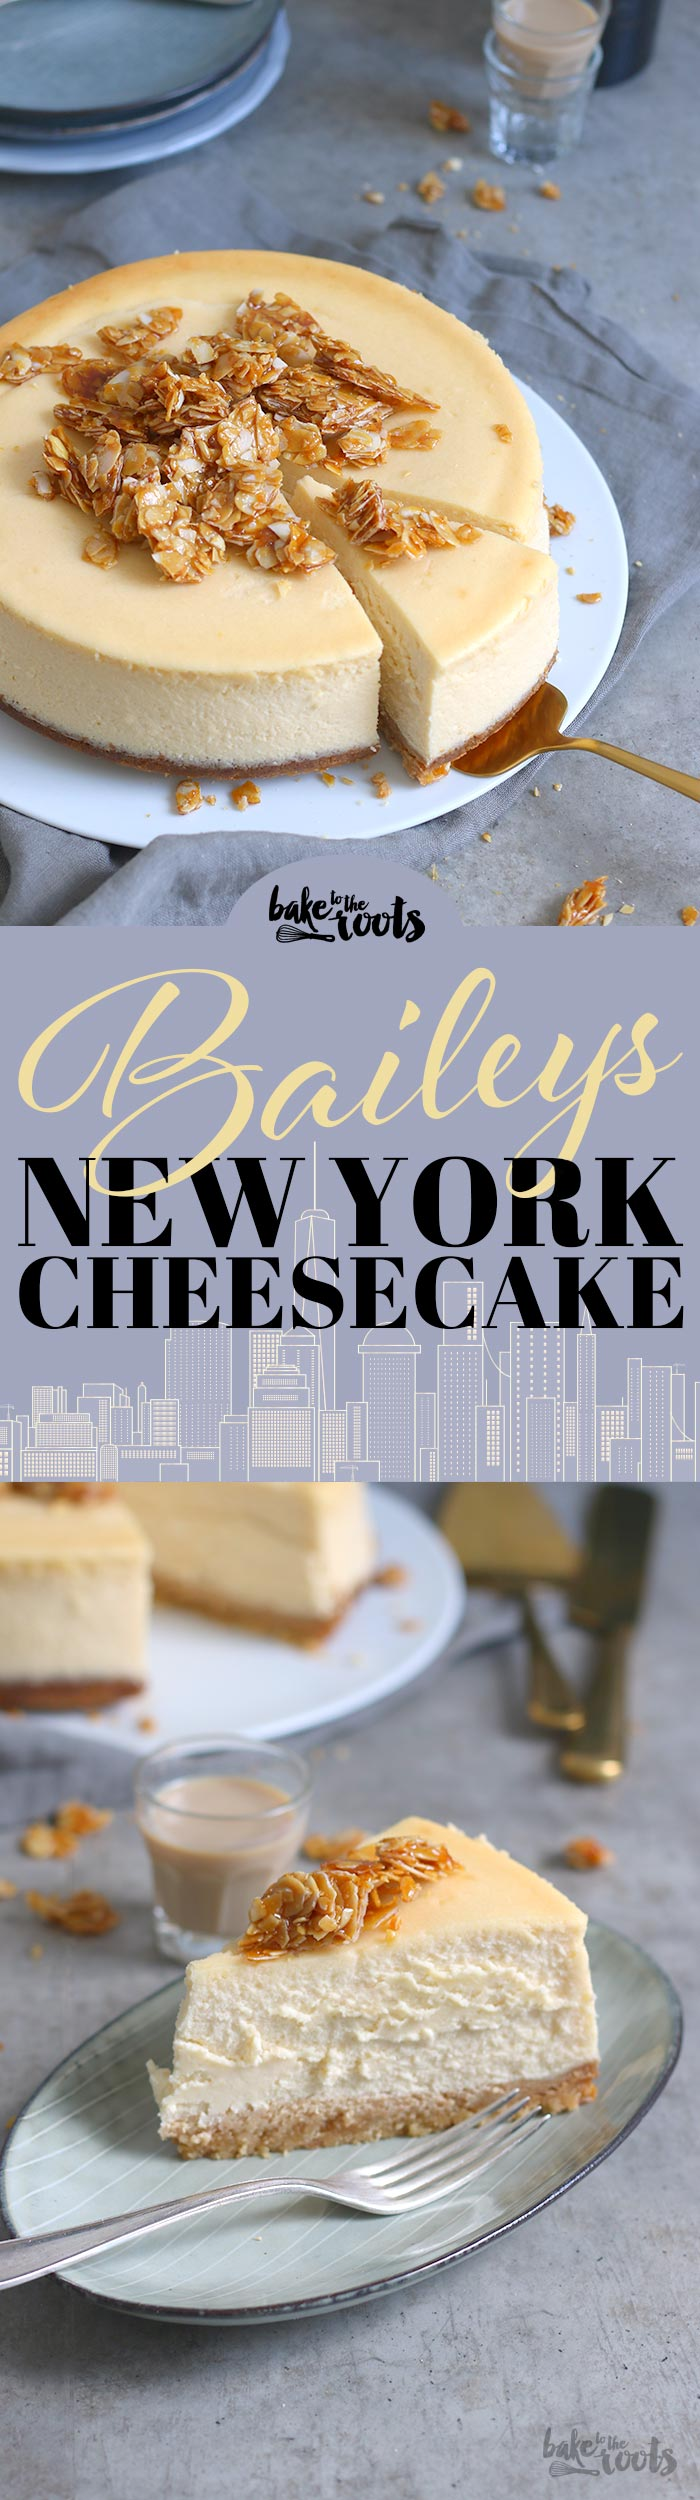 Baileys NY Cheesecake | Bake to the roots